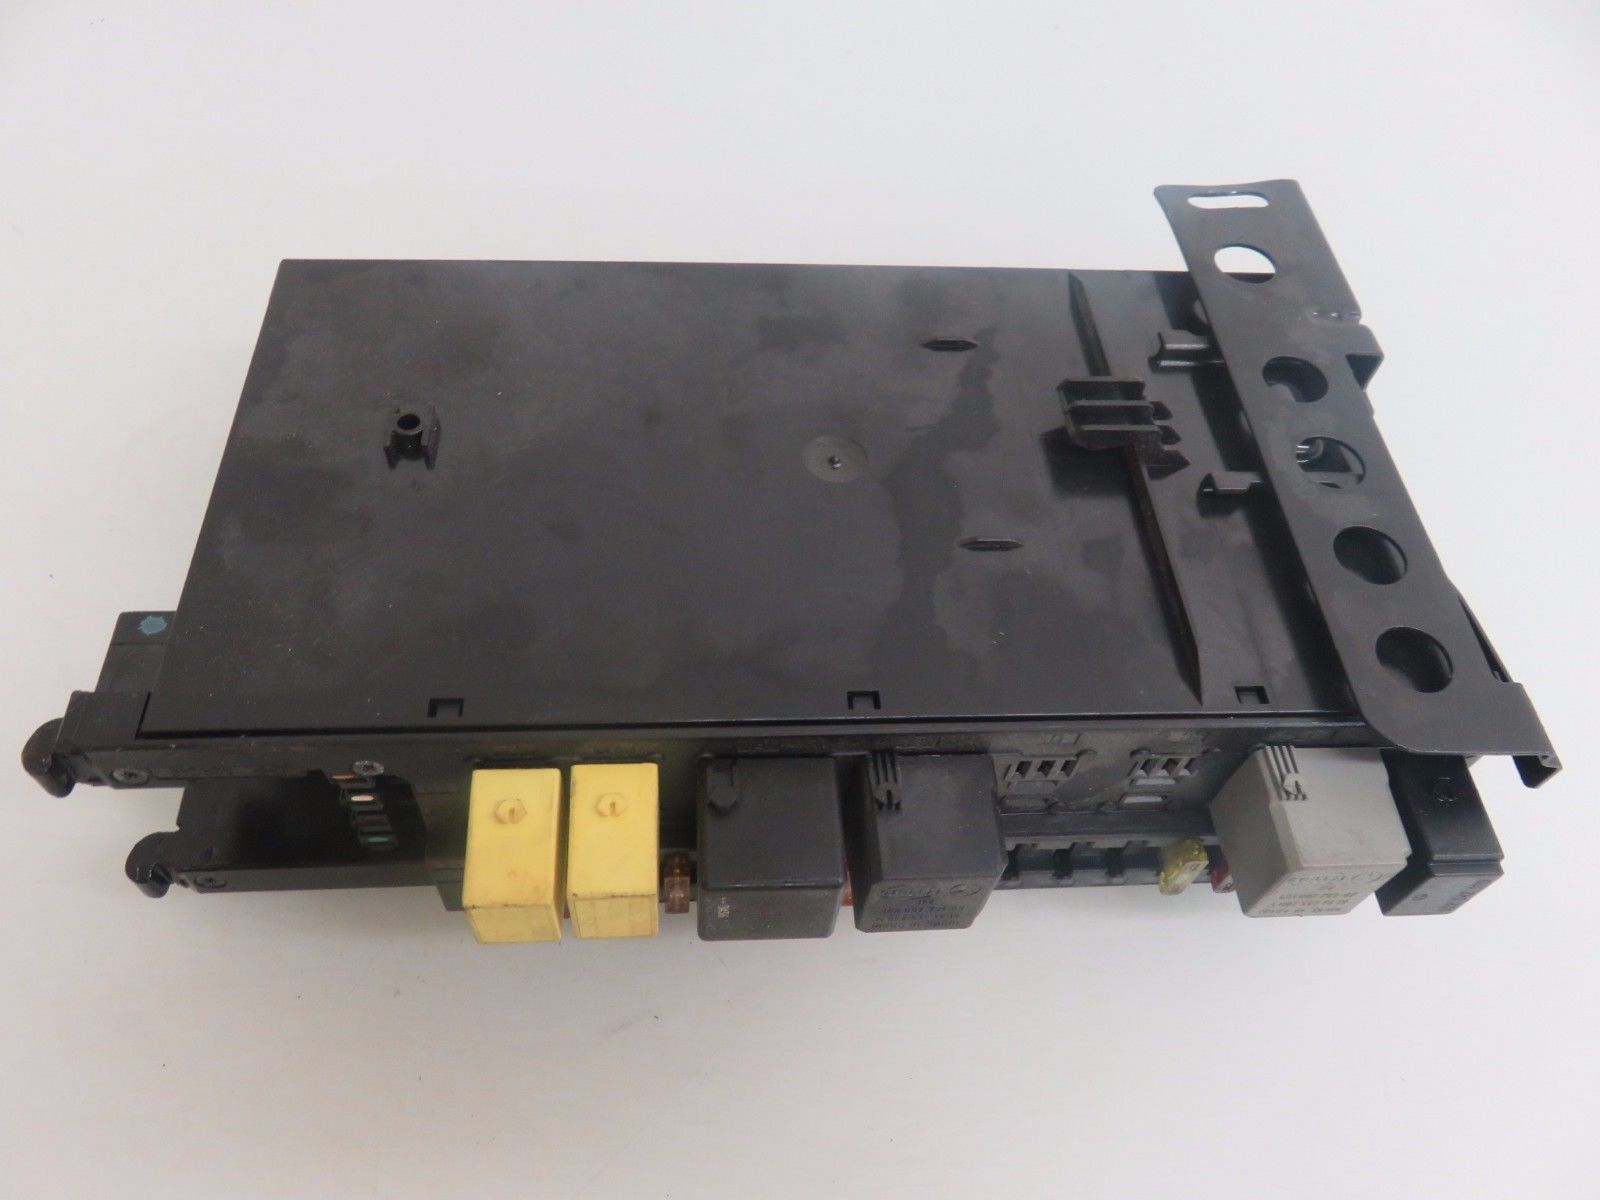 03 06 Mercedes W209 Clk500 Rear Relay Sam Fuse Box Oem 2095450901